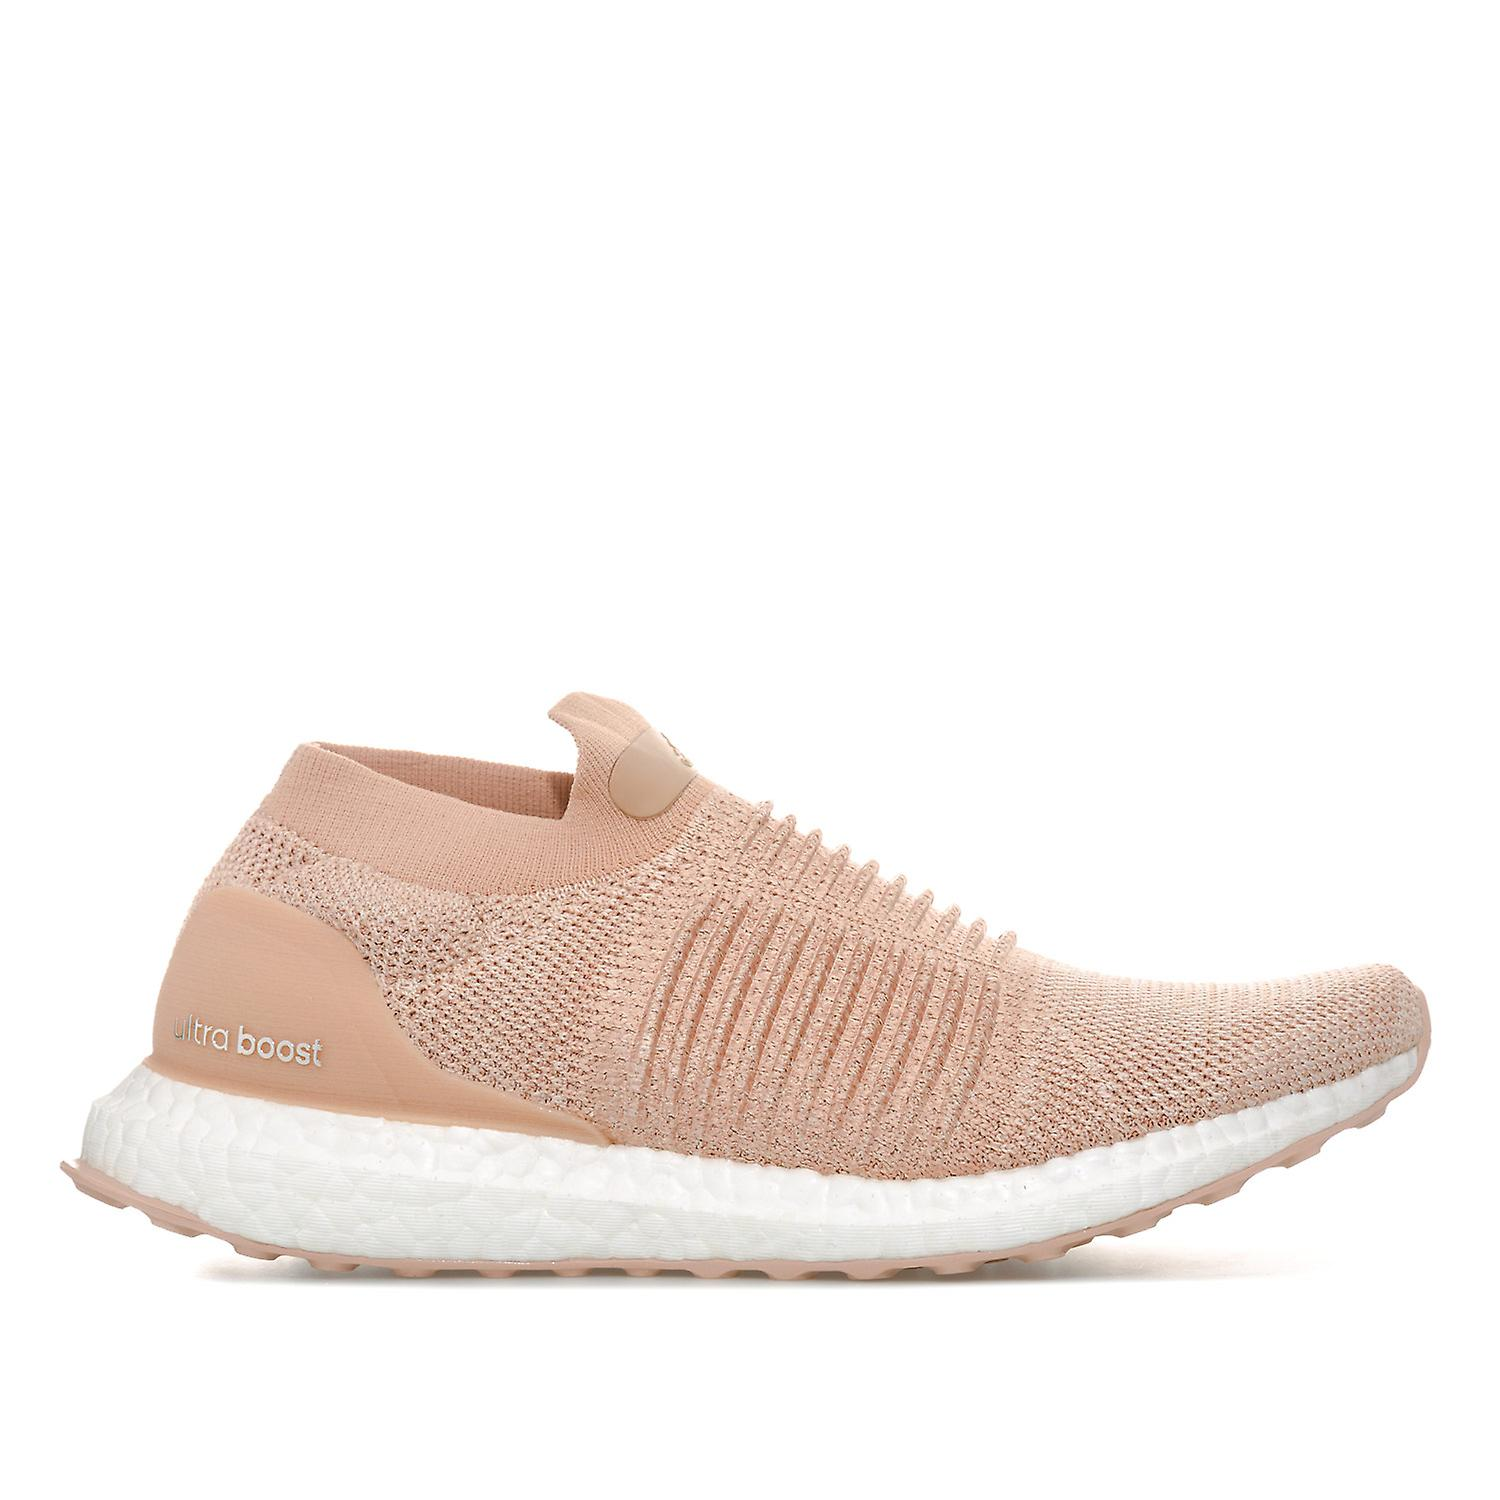 huge selection of b11e1 1f721 Womens adidas Ultraboost Laceless Running Shoes In Ash Pearl